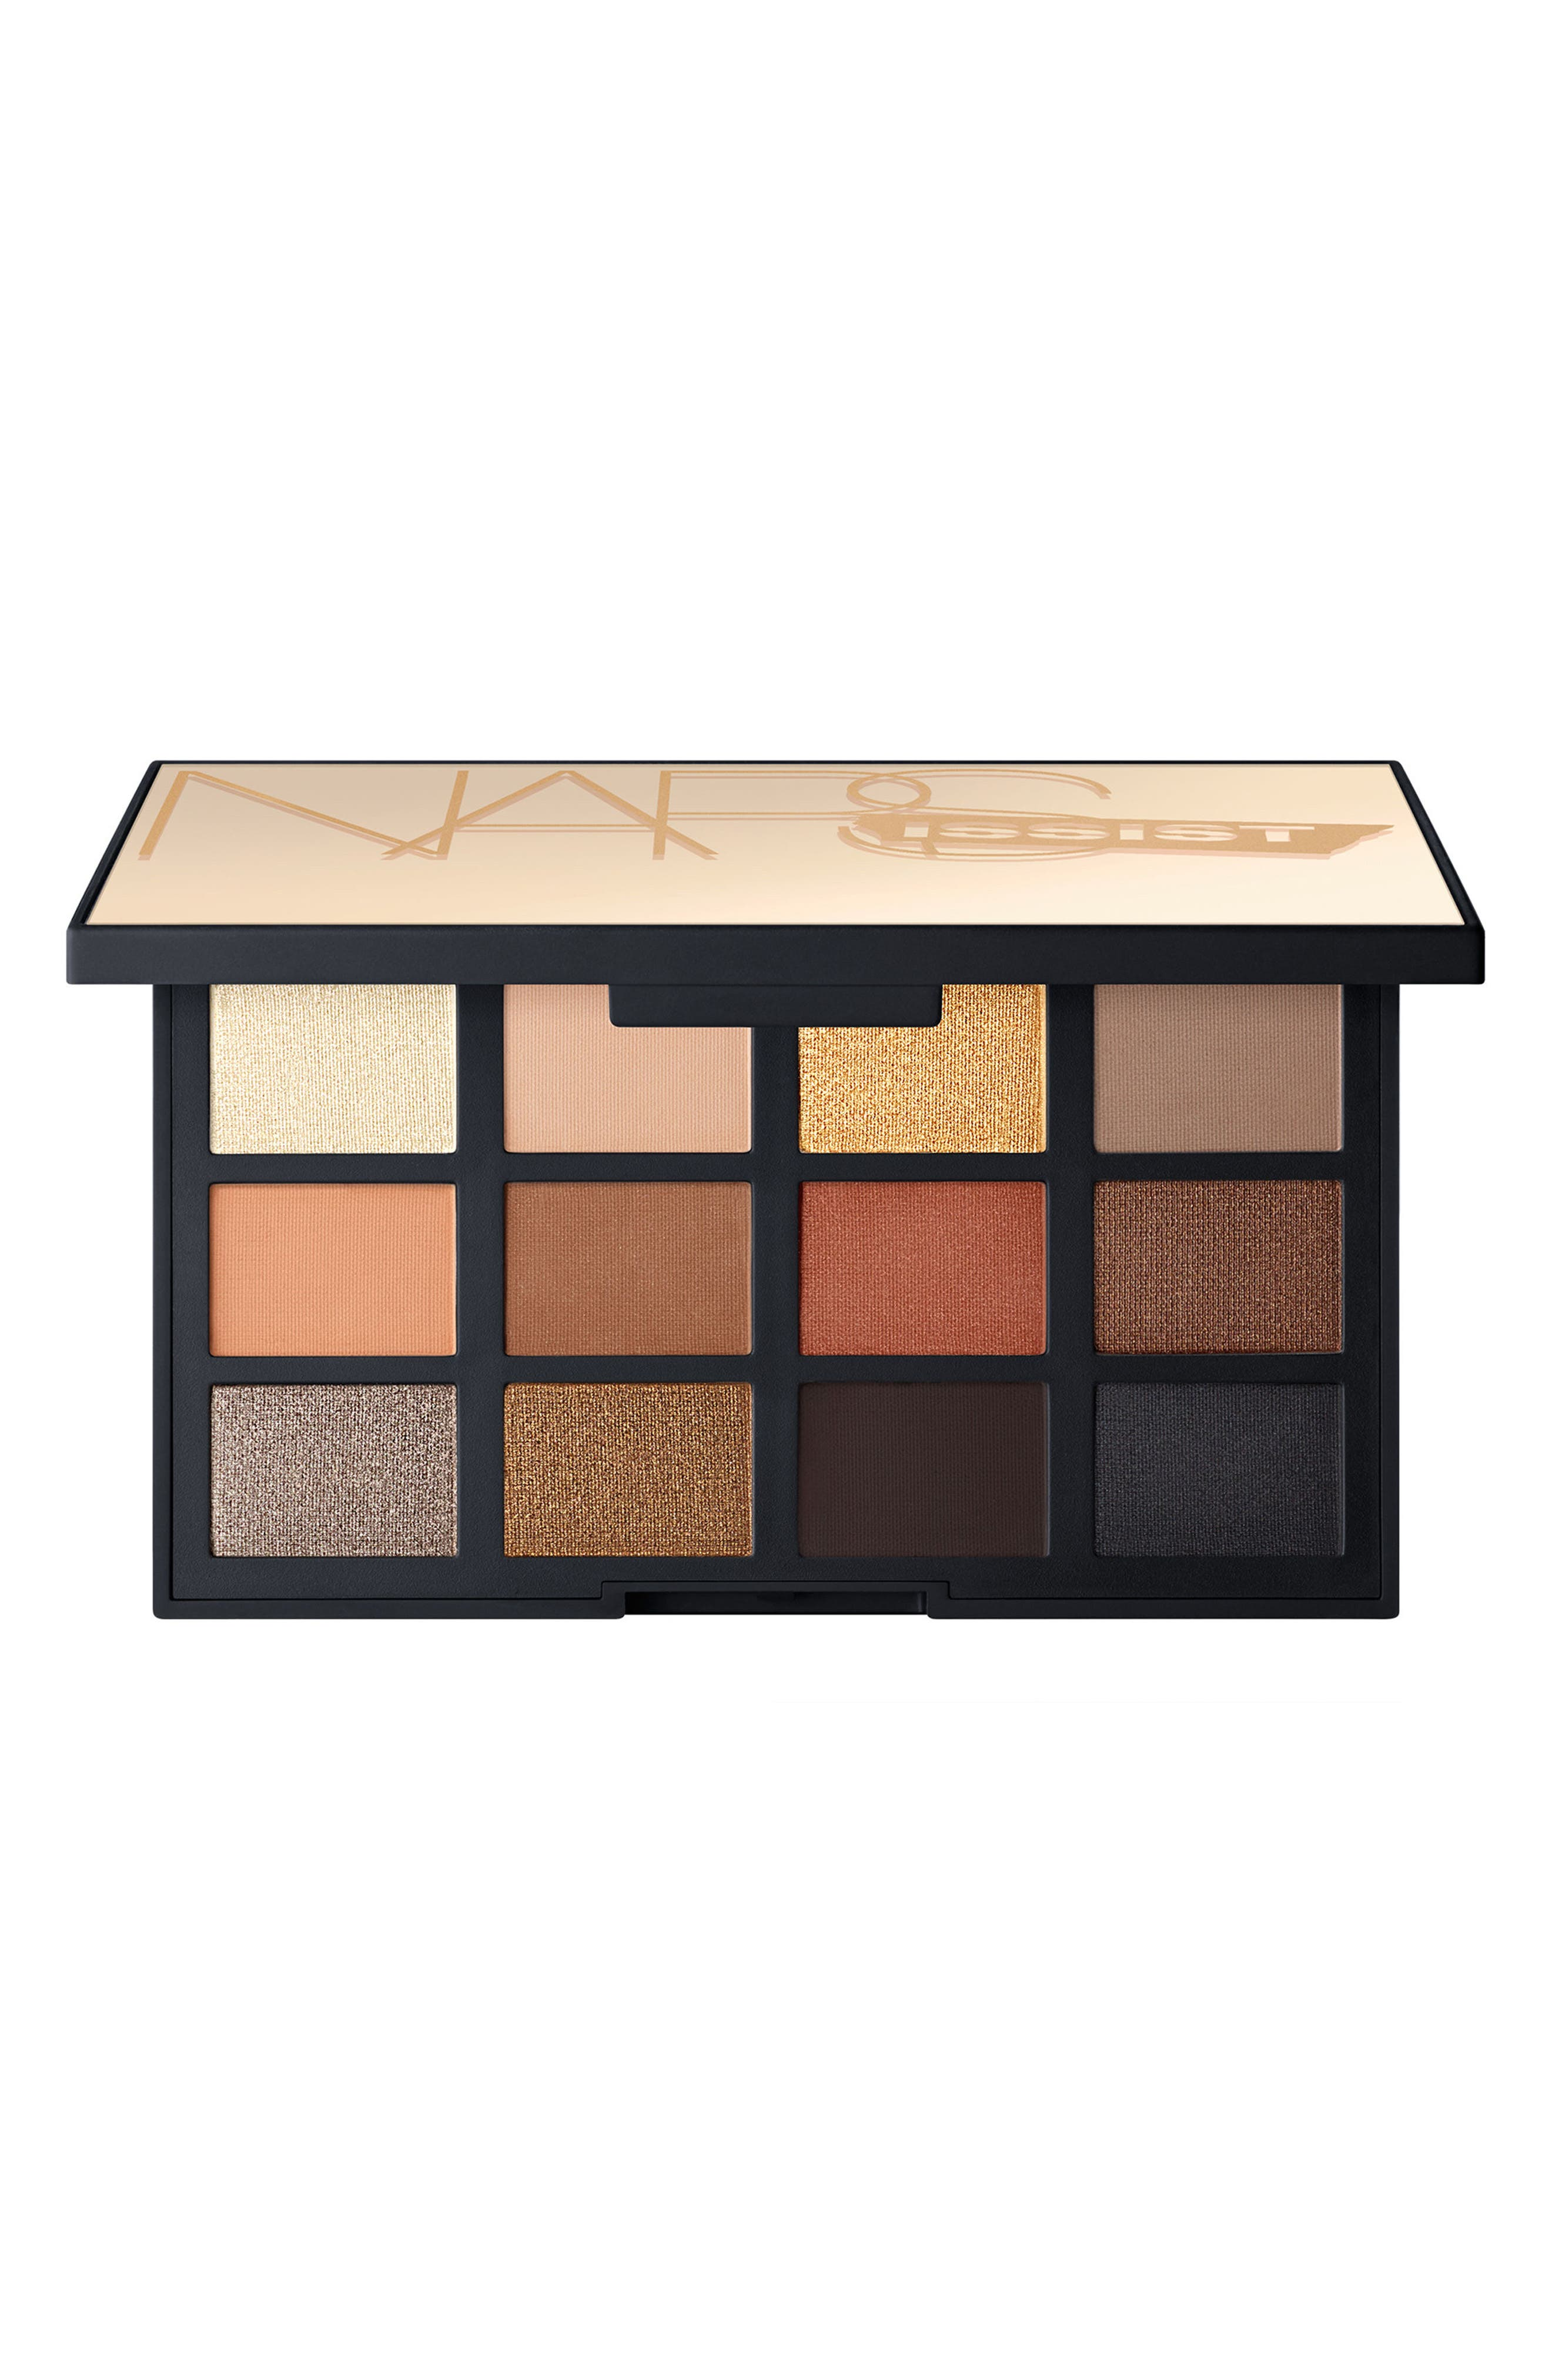 NARSissist Loaded Eyeshadow Palette,                         Main,                         color, 200